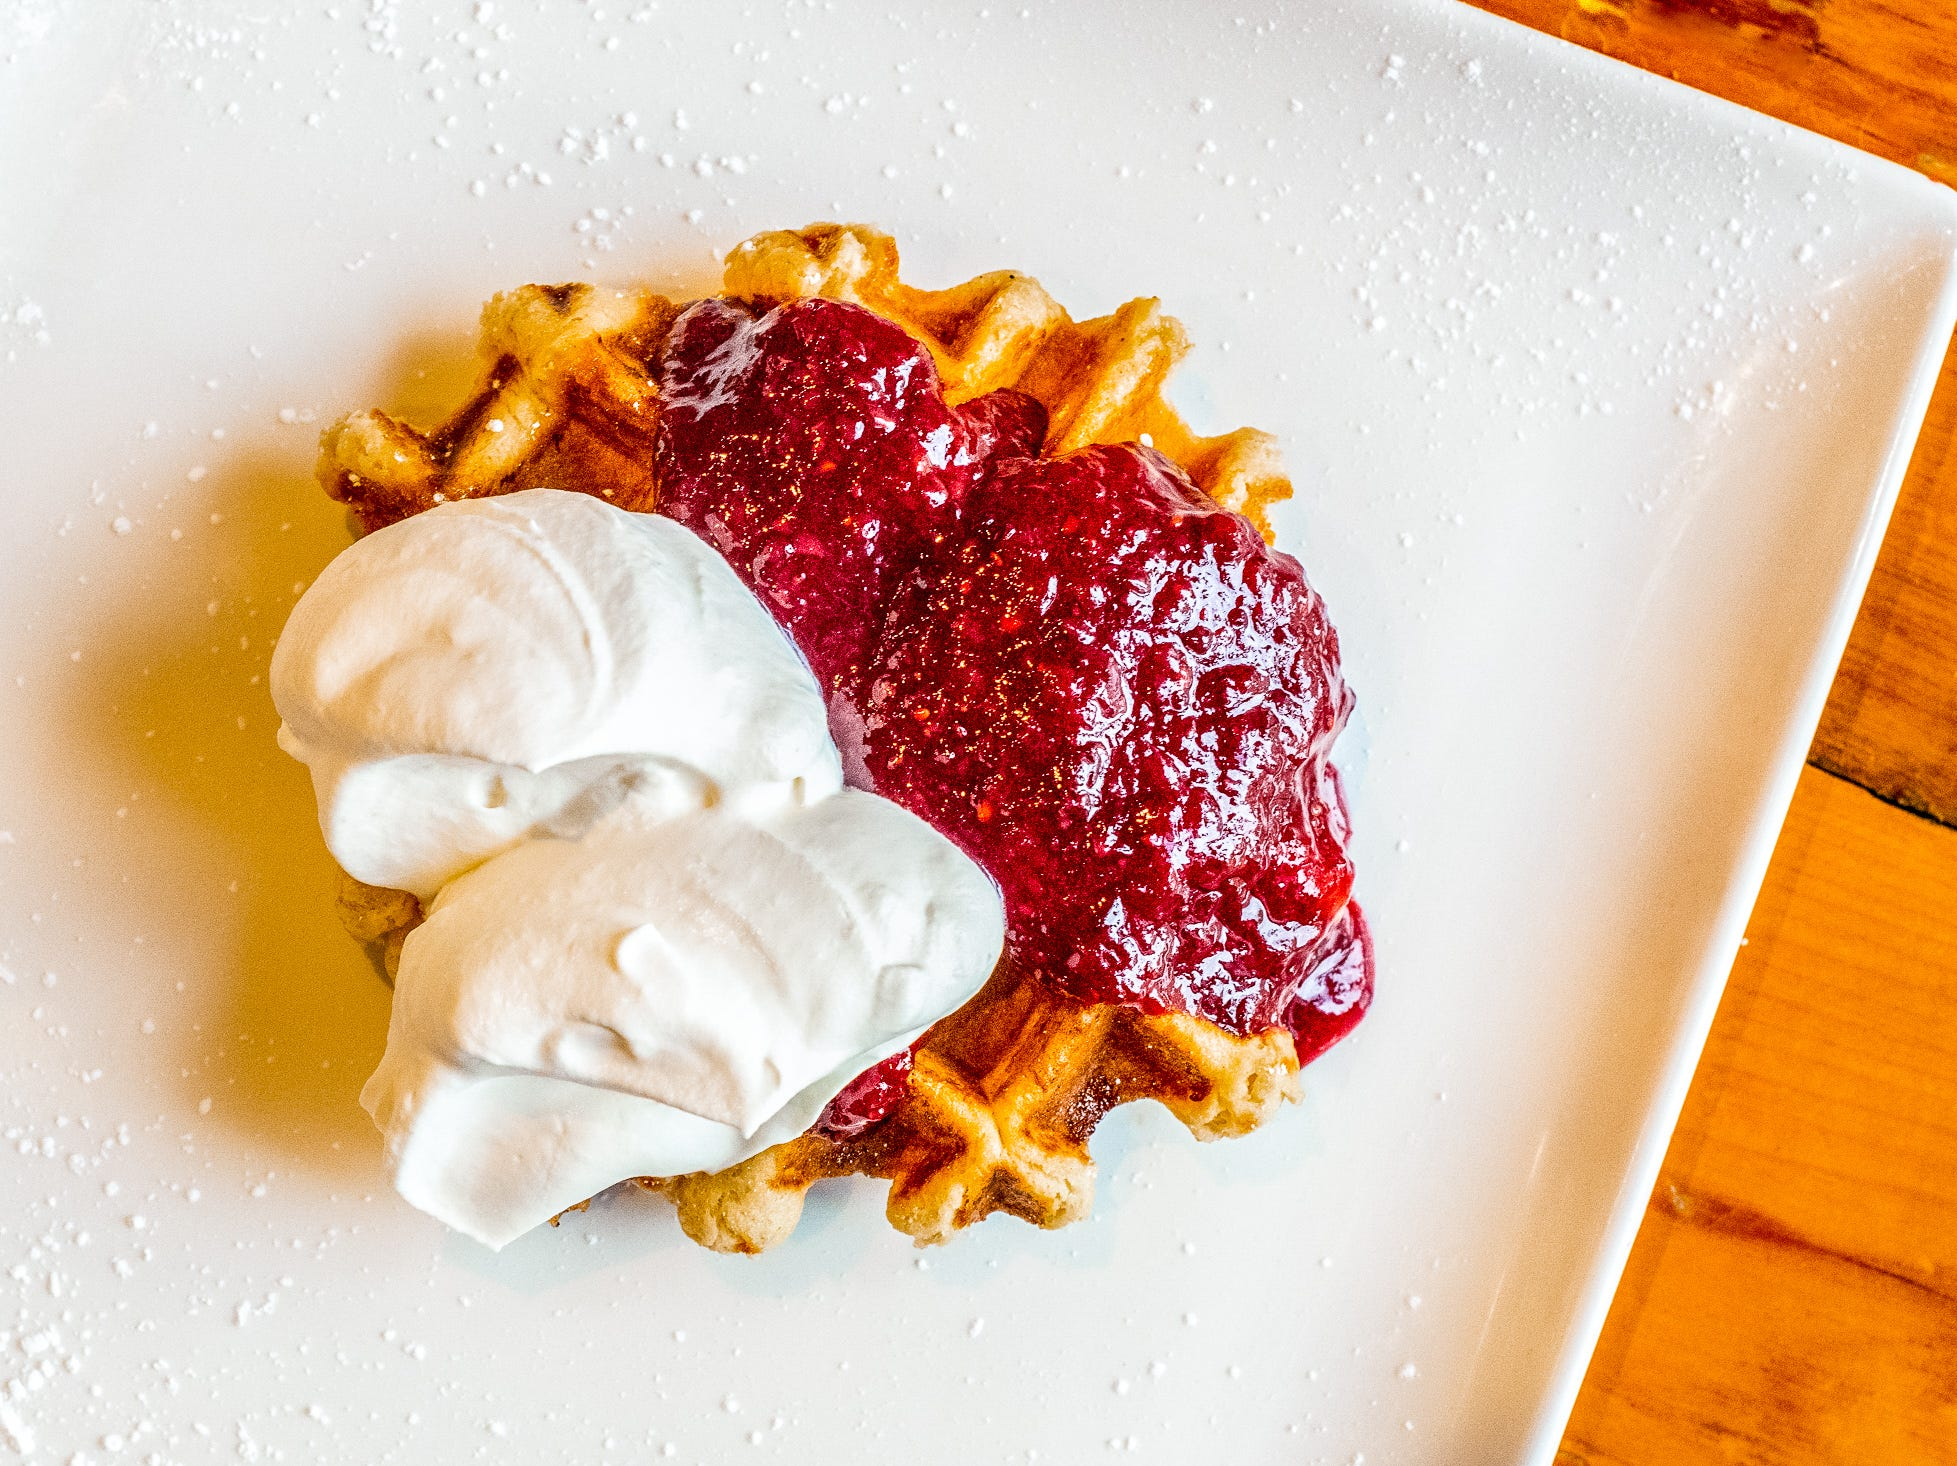 The Triple Berry Liège Waffle is made with house-made triple berry jam.